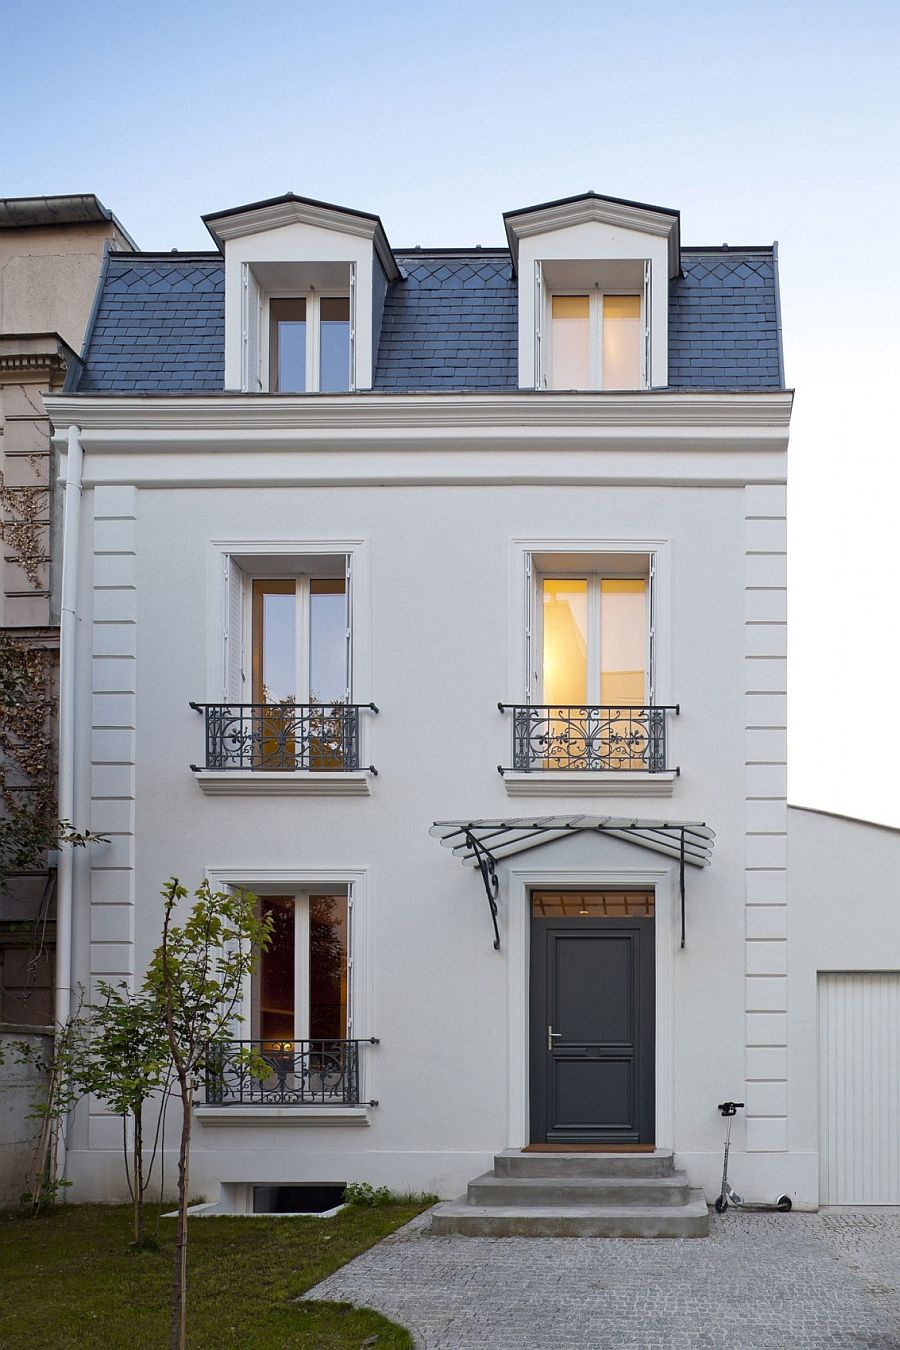 1000 images about haus on pinterest